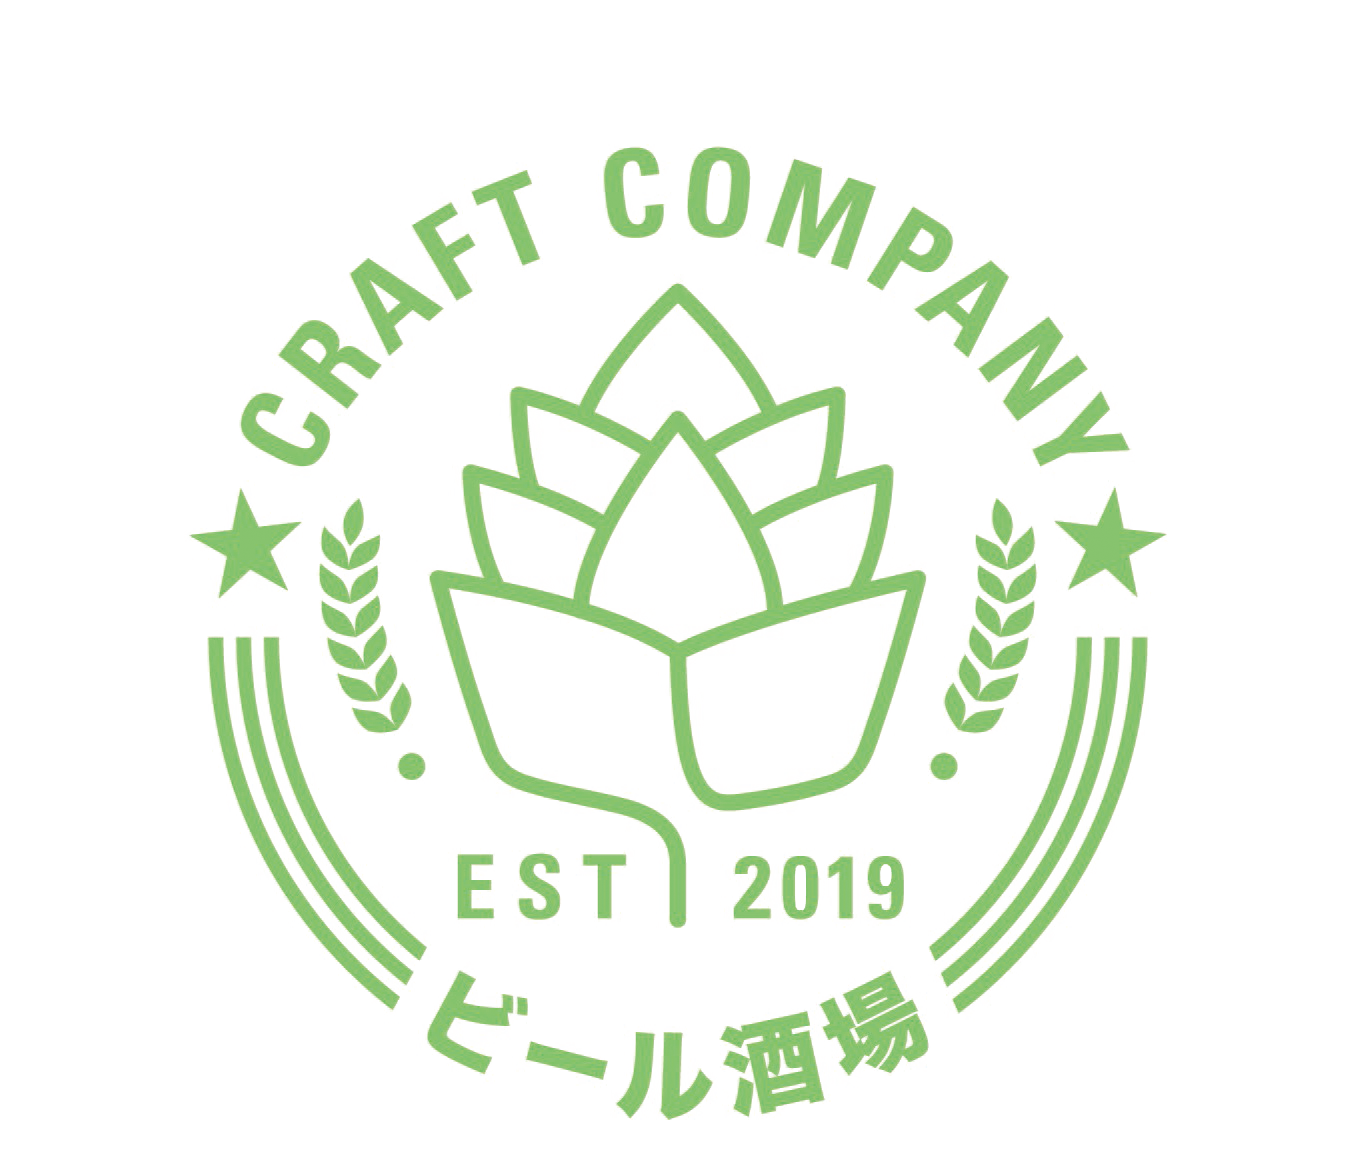 ビール酒場 CRAFT COMPANY